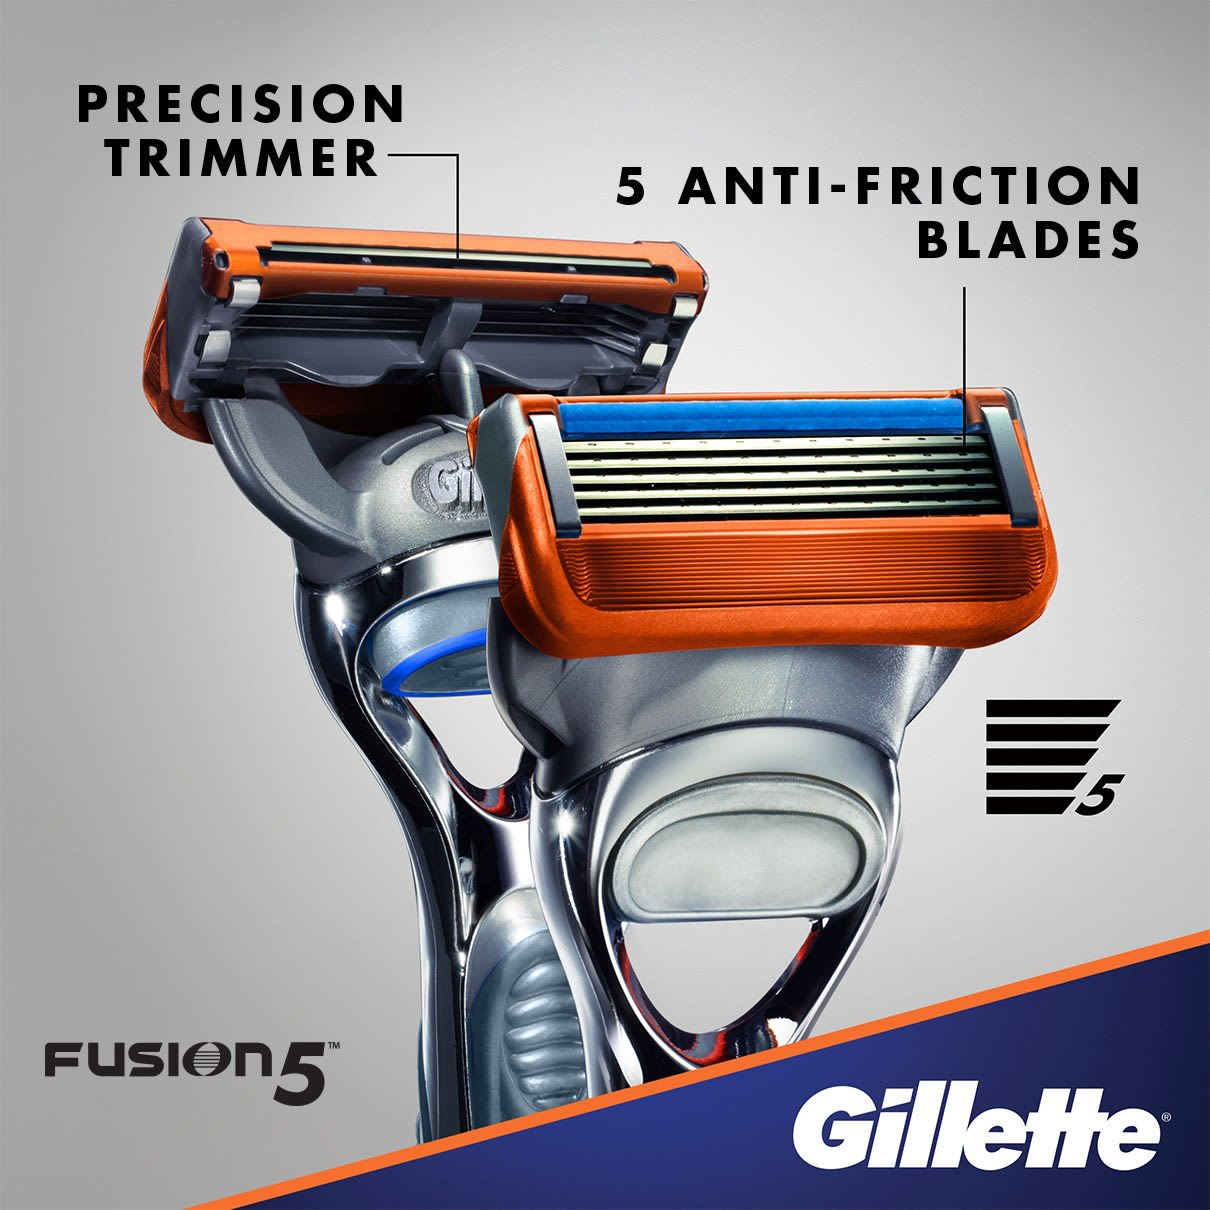 Precision trimmer, 5 anti-friction blades